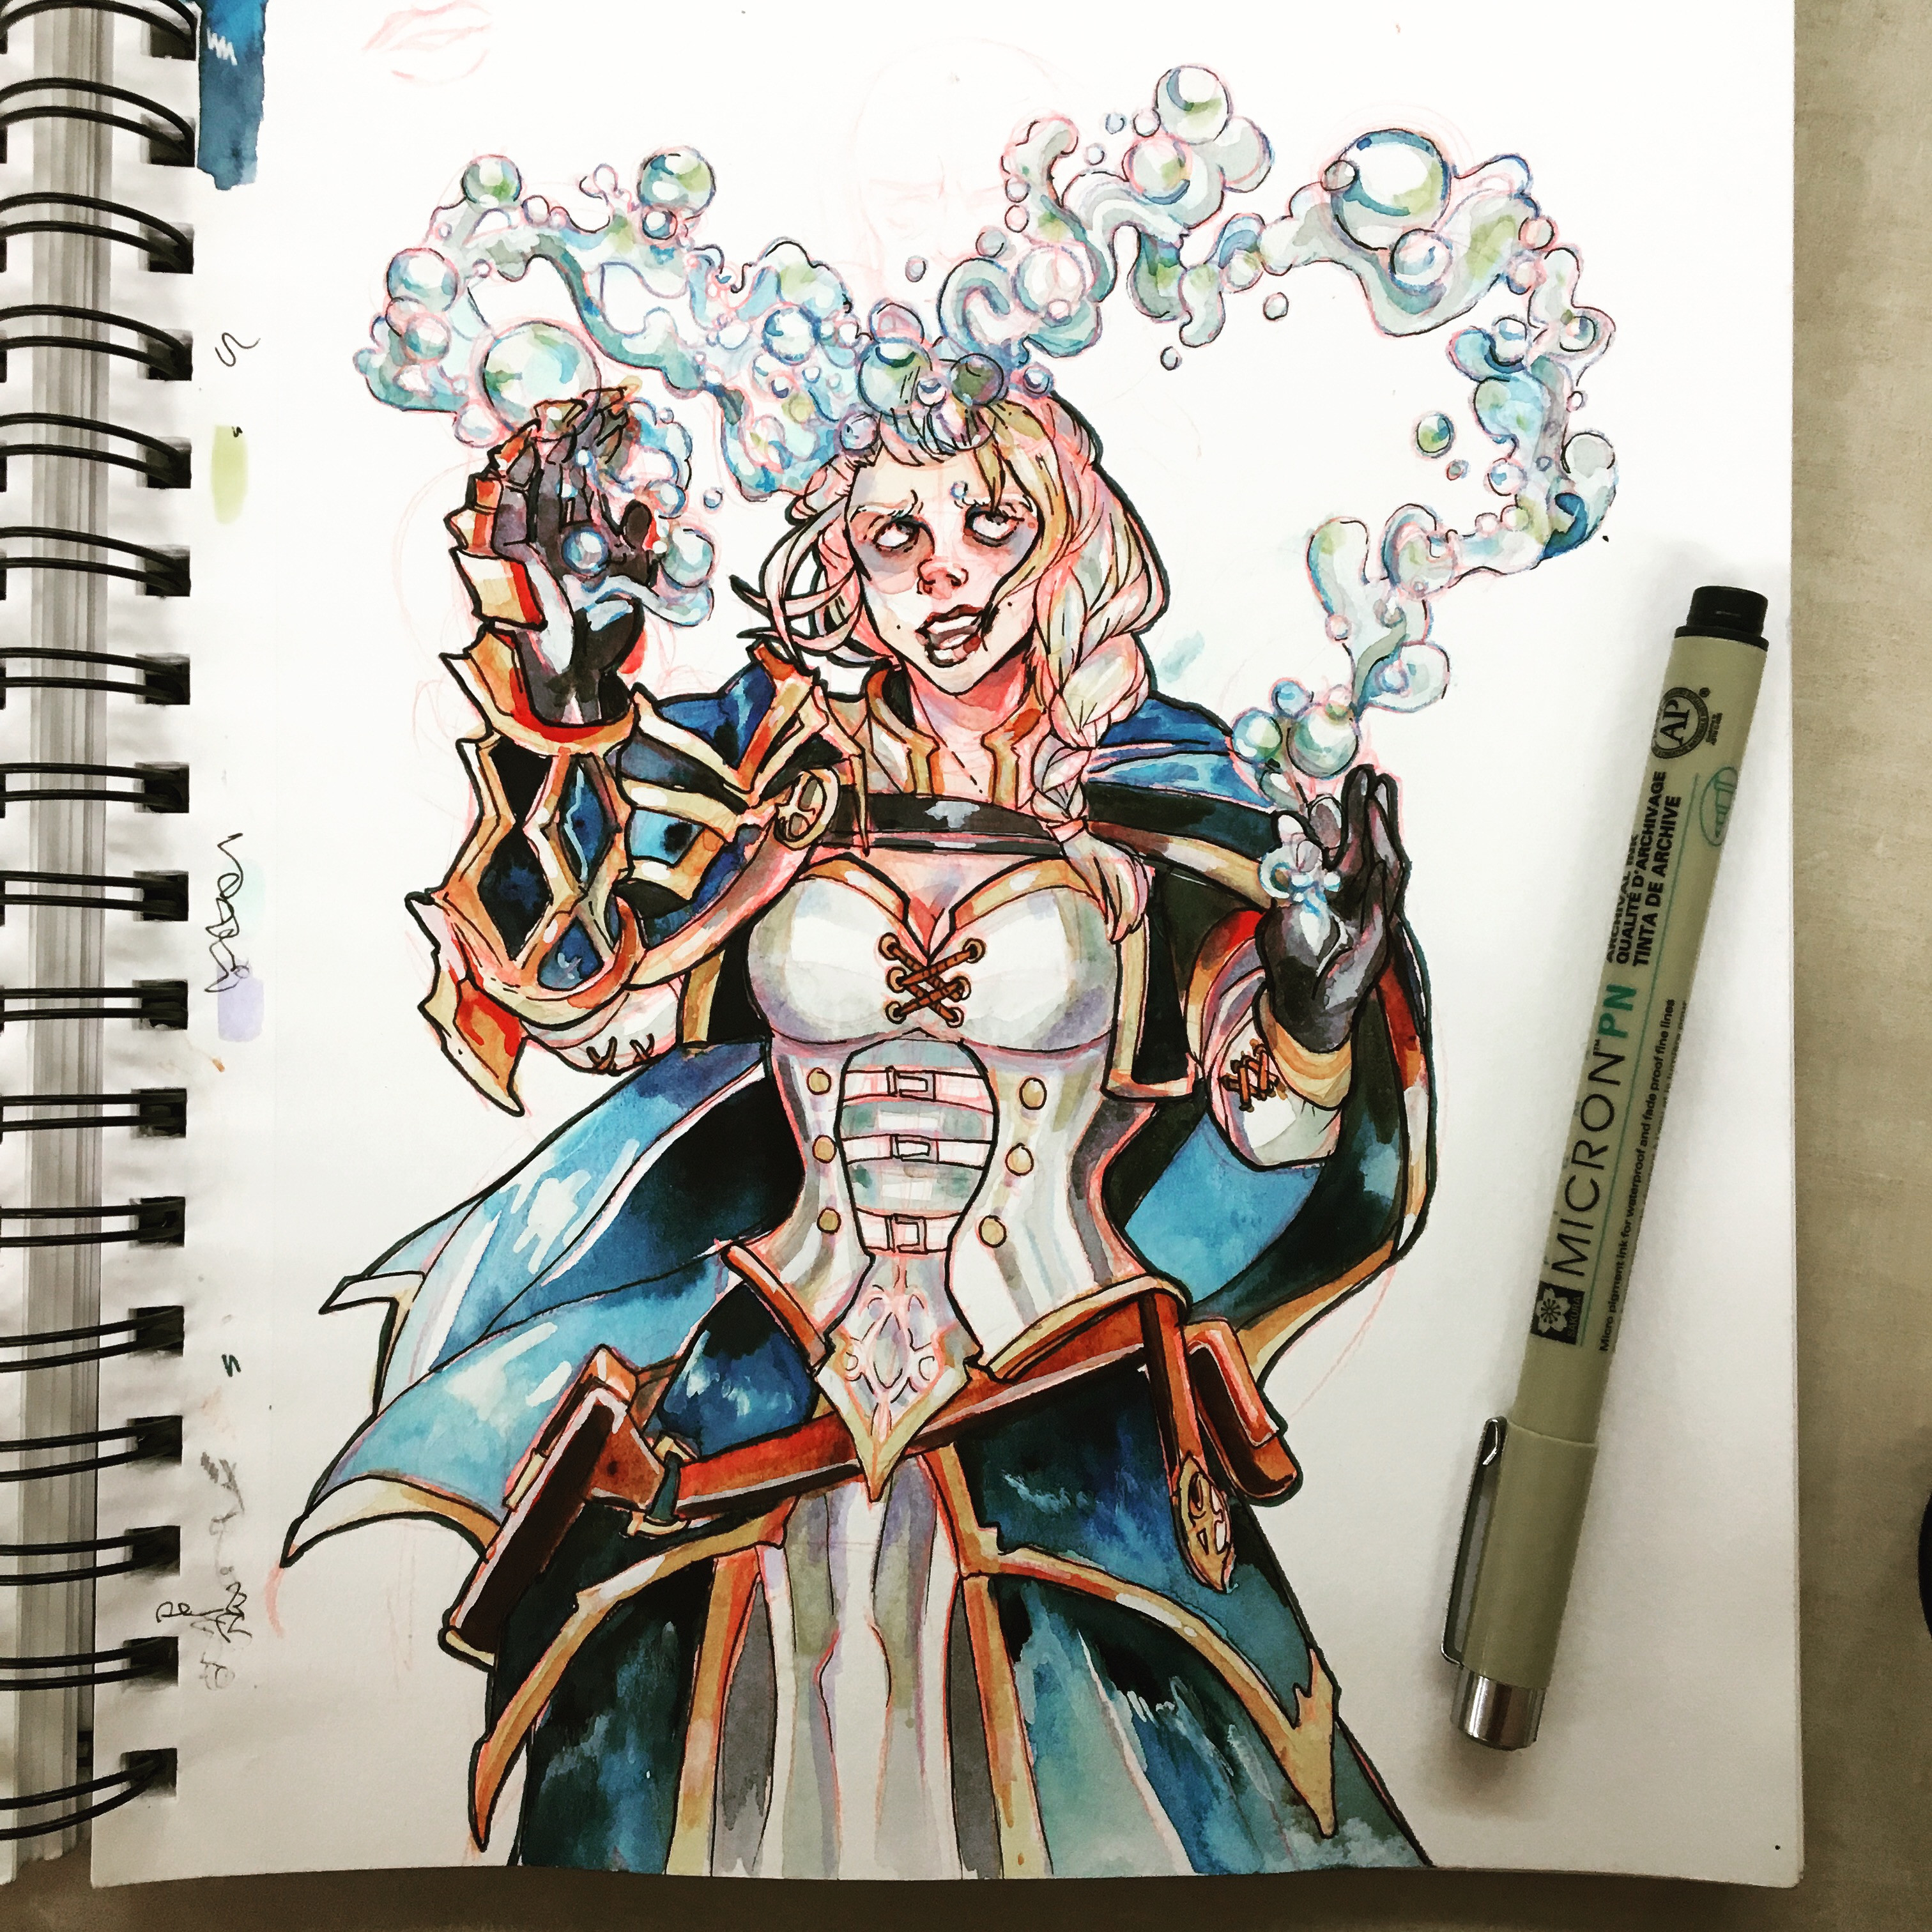 Jaina obviously belongs to Blizzard Ent.